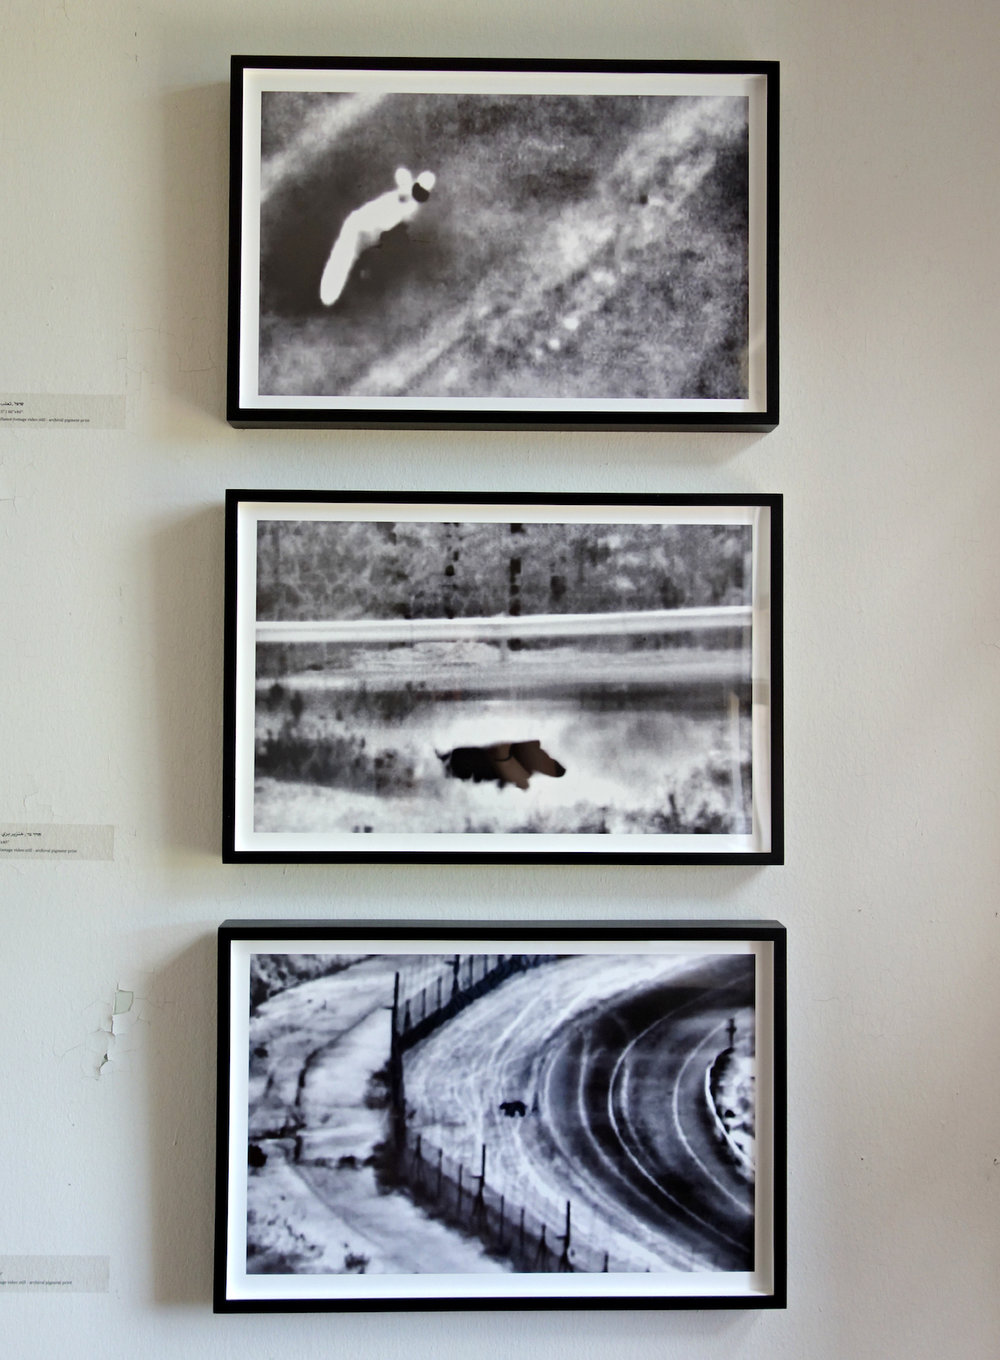 Surveillance footage stills of animals by Netta Laufer -  Installation at Governor's Island Art Fair